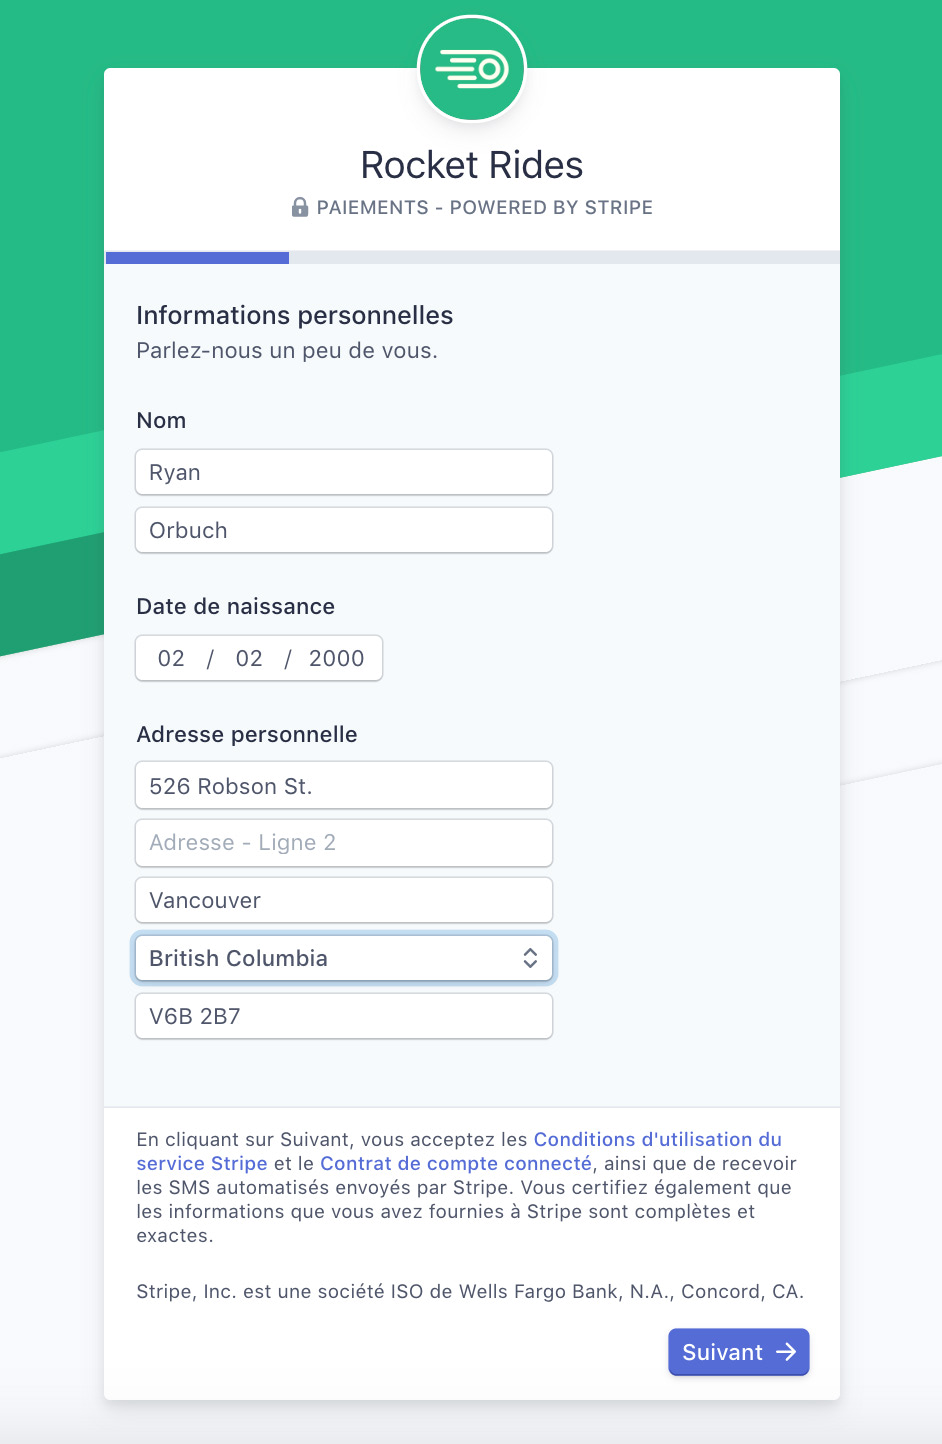 To onboard a French-speaking user in Canada, you'd need to localize the form to handle changes in field structure and validation, business entity types, and compliance requirements (e.g., in Canada, you can't require collection of a Social Insurance Number). The Connect onboarding flow for Express accounts handles all of these considerations.